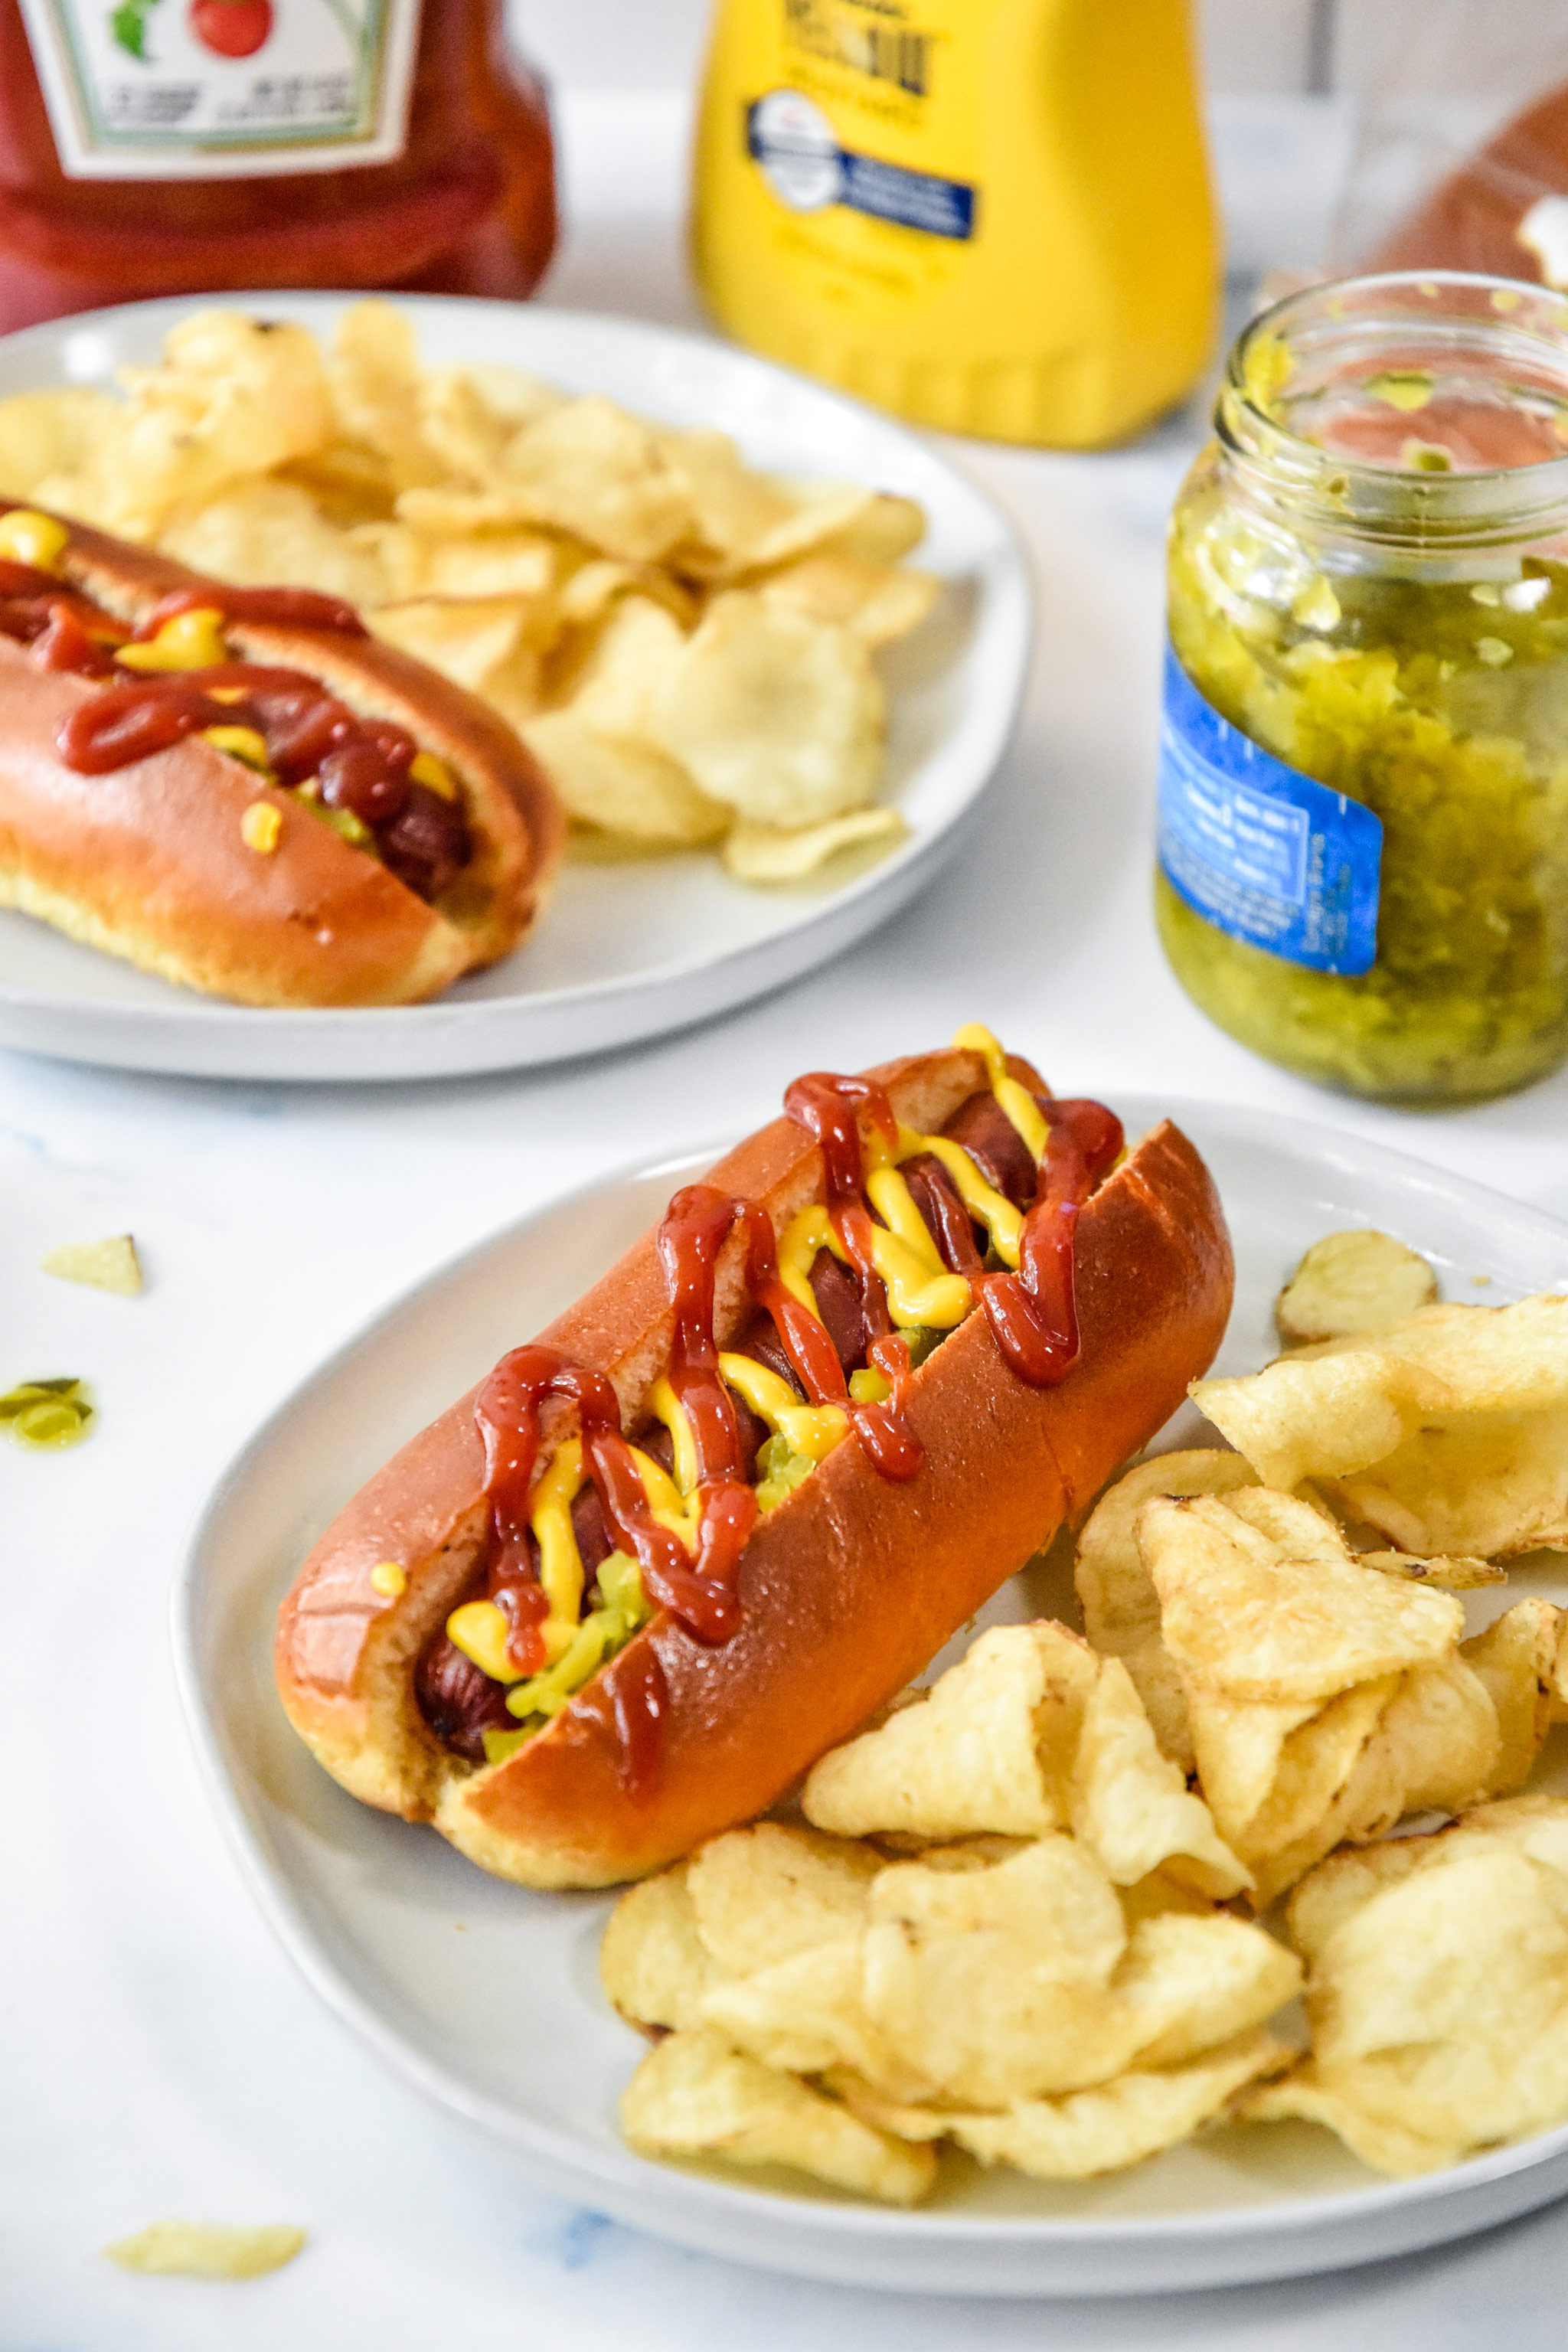 air fryer hot dogs served with chips.